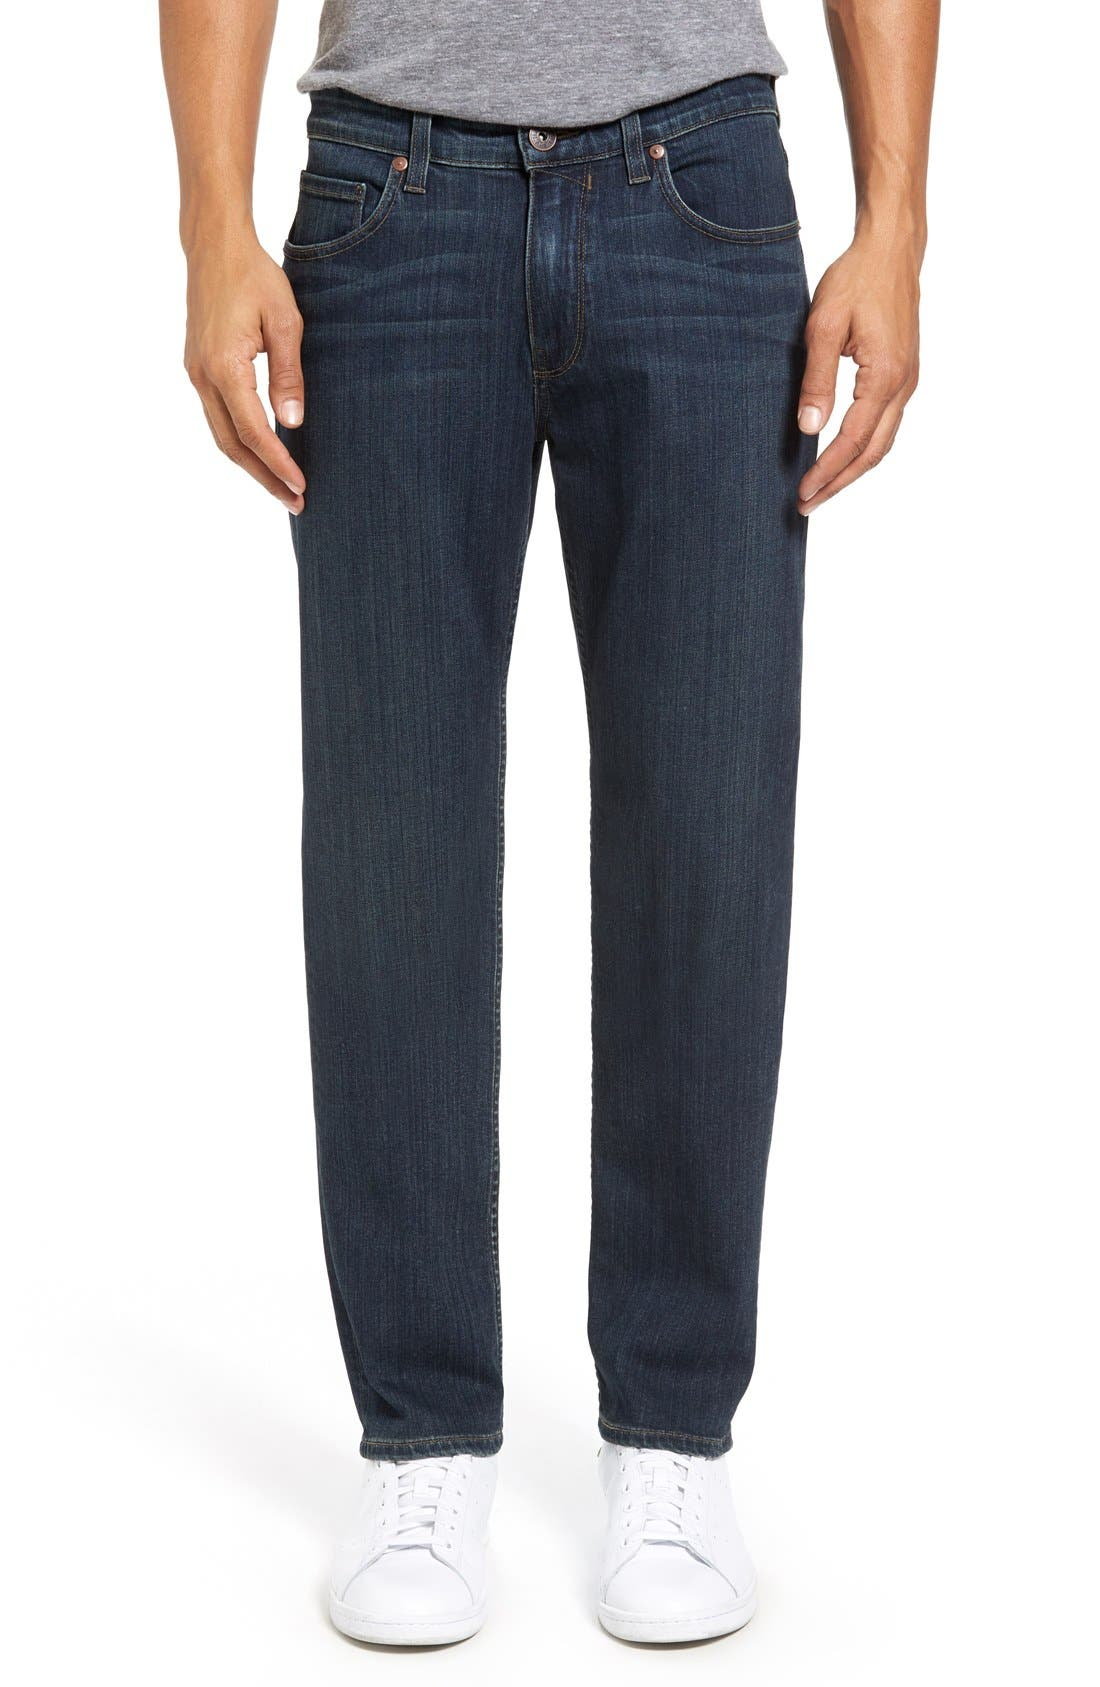 Transcend - Federal Slim Straight Leg Jeans,                         Main,                         color,